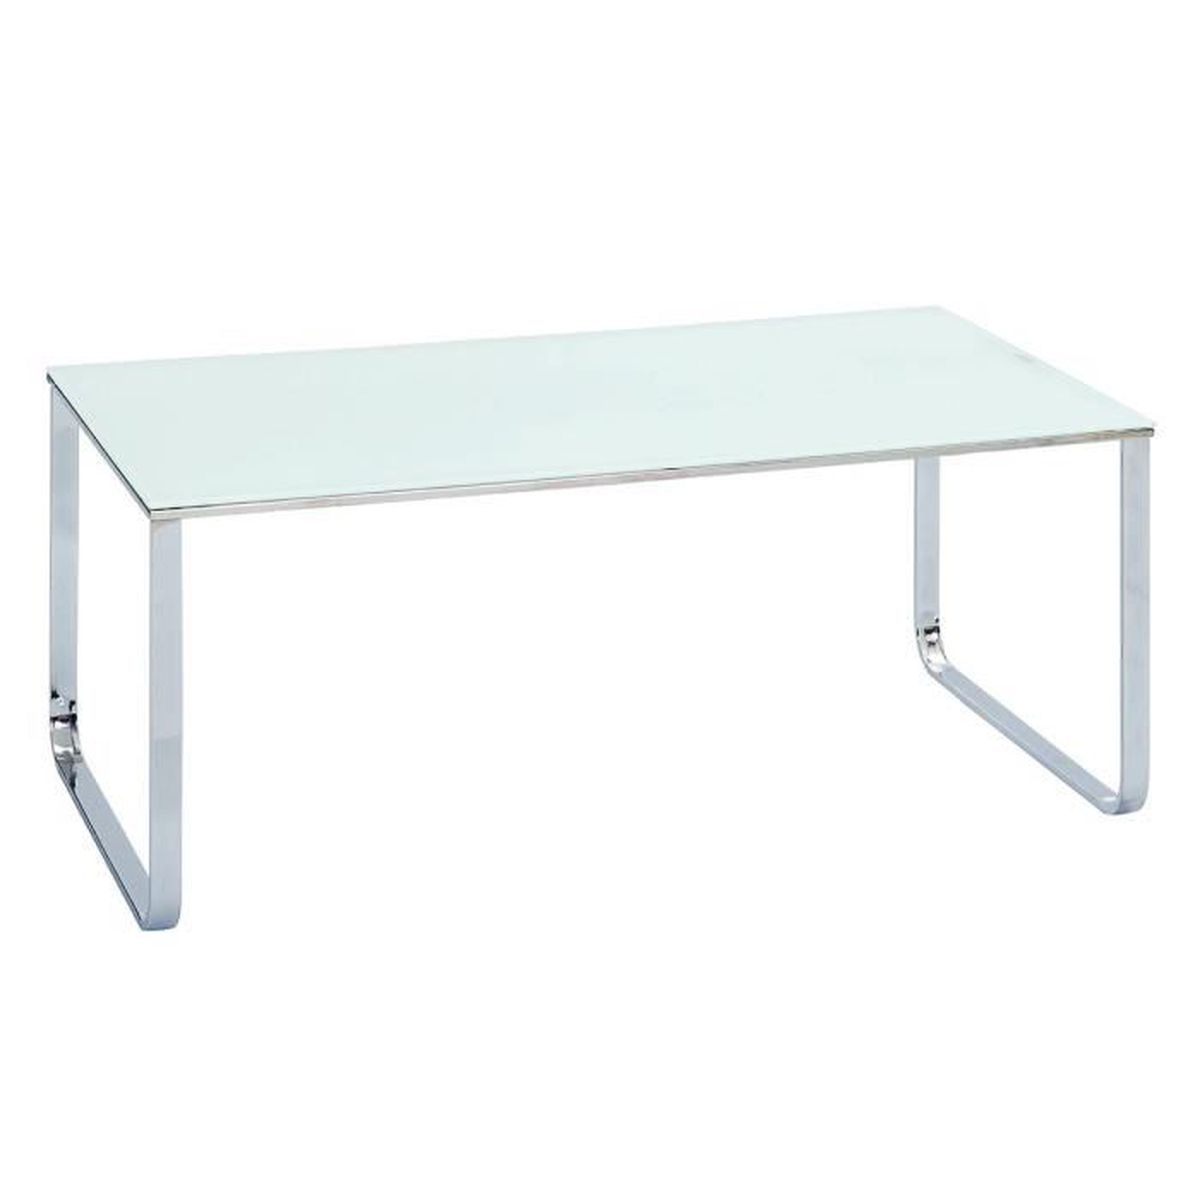 samira table basse rectangulaire blanche achat vente table basse samira table basse. Black Bedroom Furniture Sets. Home Design Ideas